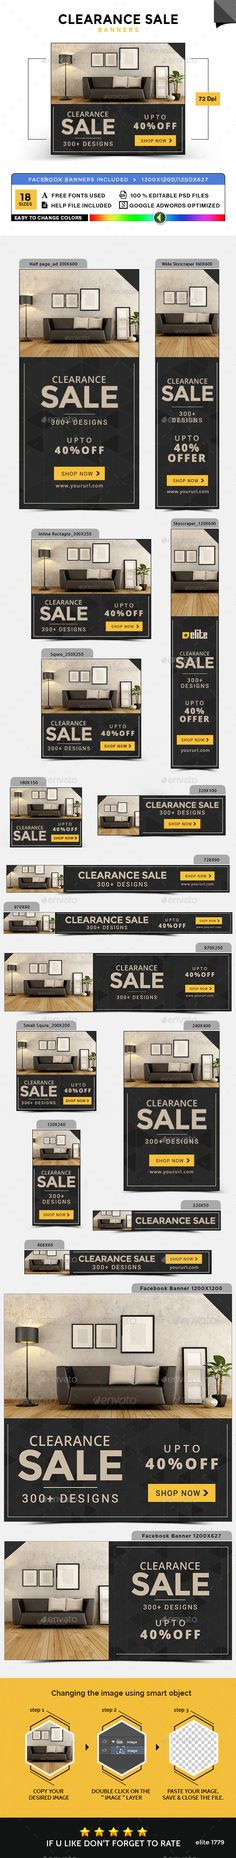 Clearance Sale Banners Design Template - Banners & Ads Web Element Template PSD. Download here: https://graphicriver.net/item/clearance-sale-banners/17728321?s_rank=29&ref=yinkira